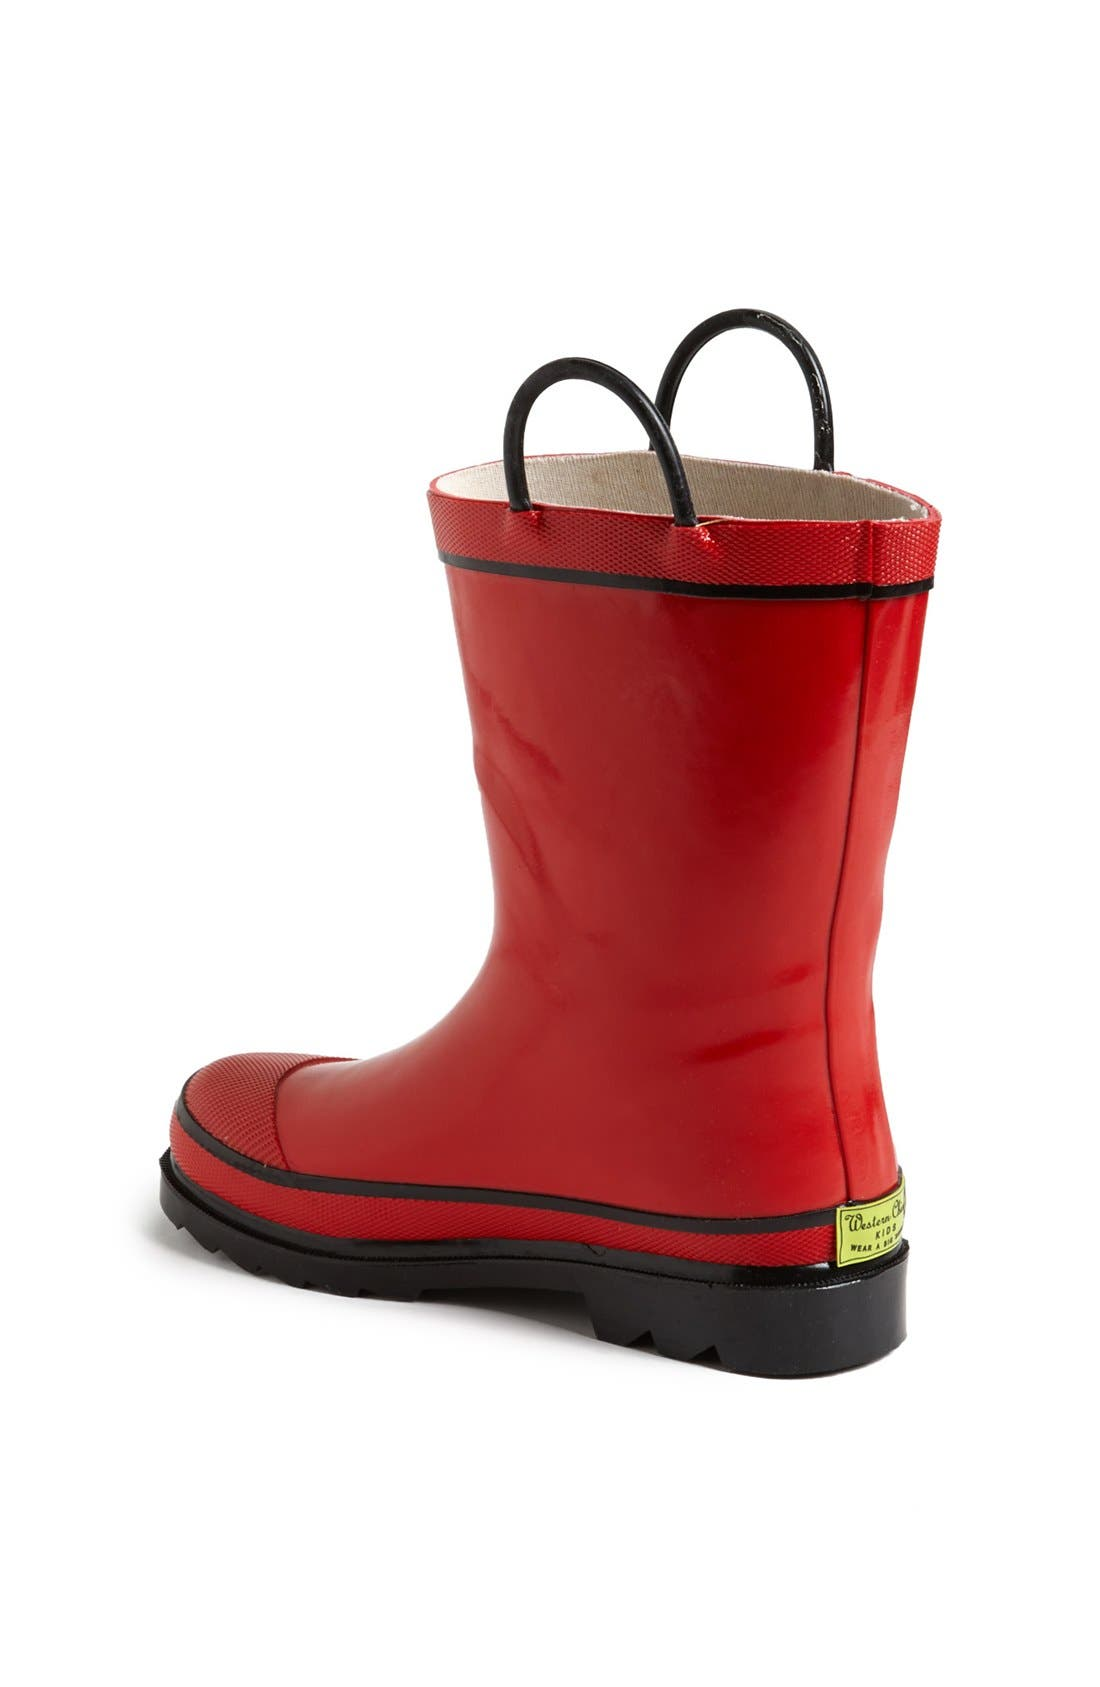 Alternate Image 2  - Western Chief 'Firechief 2' Rain Boot  (Walker, Toddler, Little Kid & Big Kid)